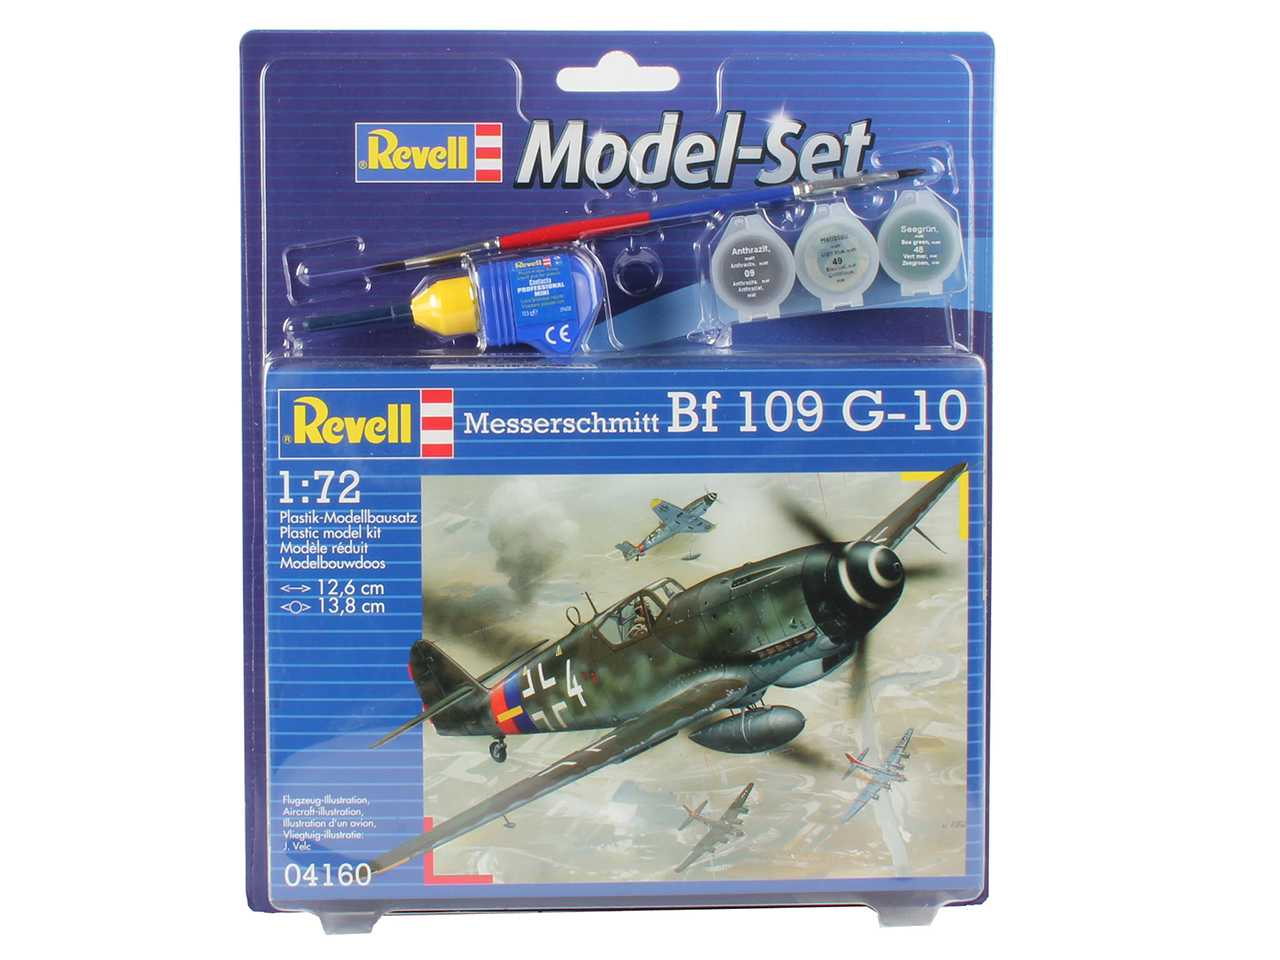 1:72 Messerschmitt Bf 109 G-10 (Model Set)